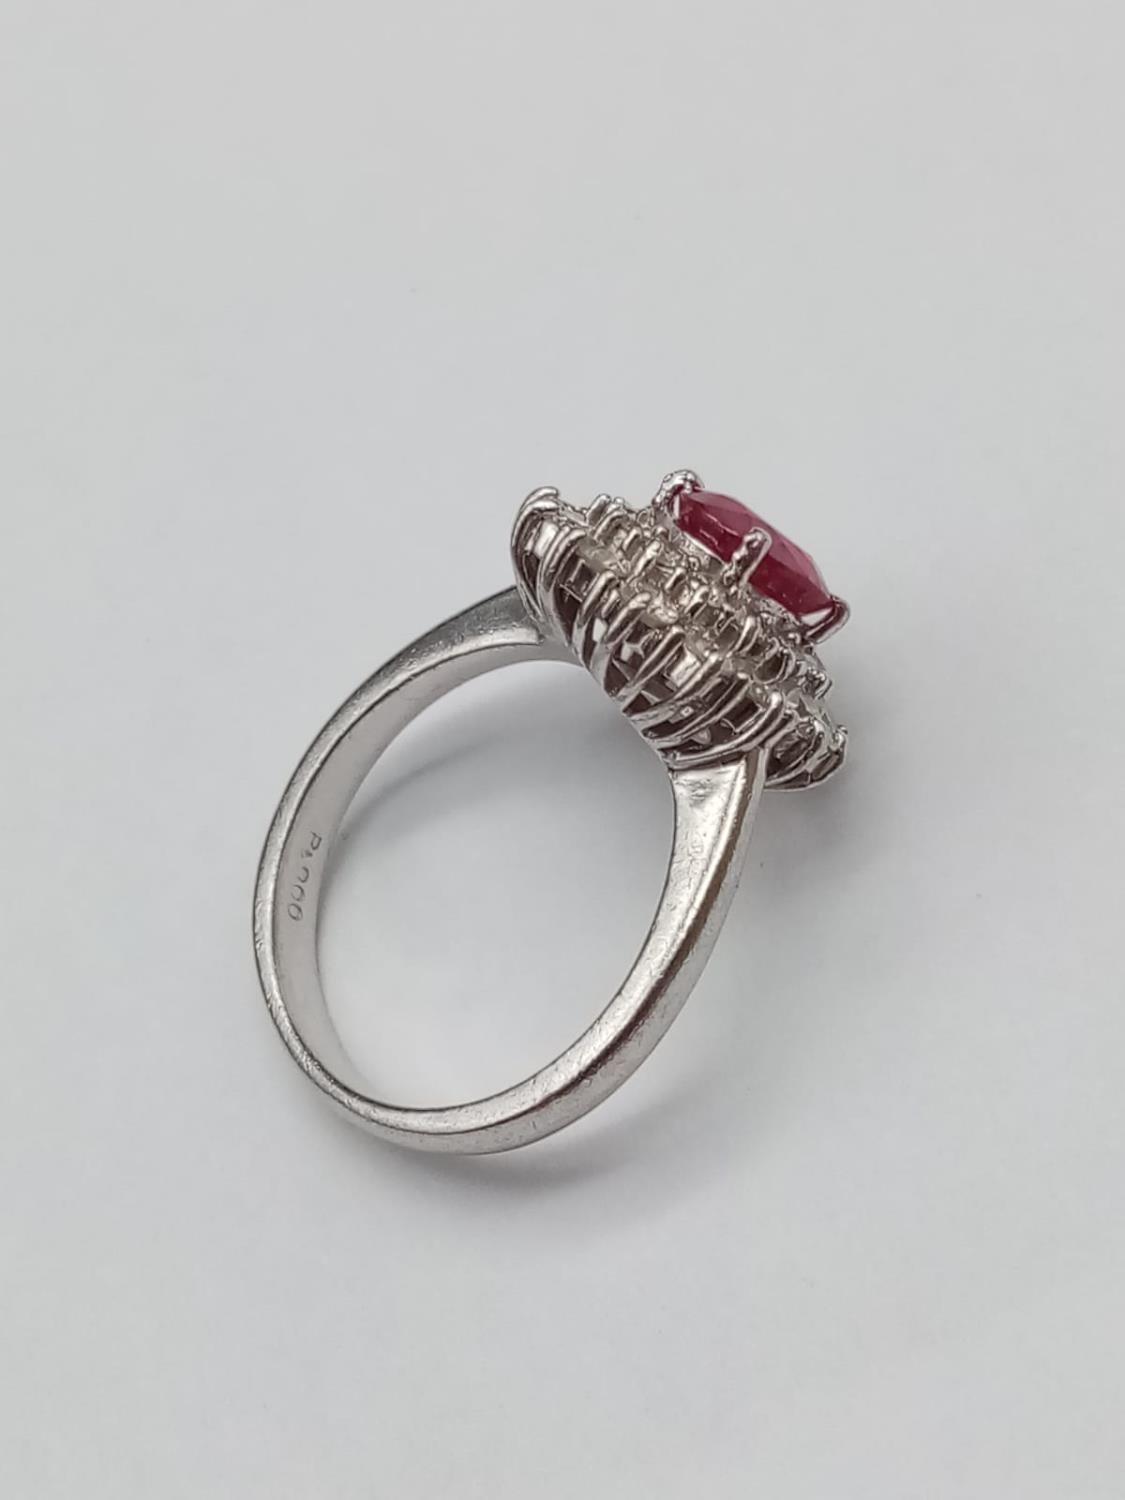 A PLATINUM RING WITH PINK RUBY CENTRE STONE WITH DIAMOND SURROUND. 6.5gms size K/L - Image 3 of 7